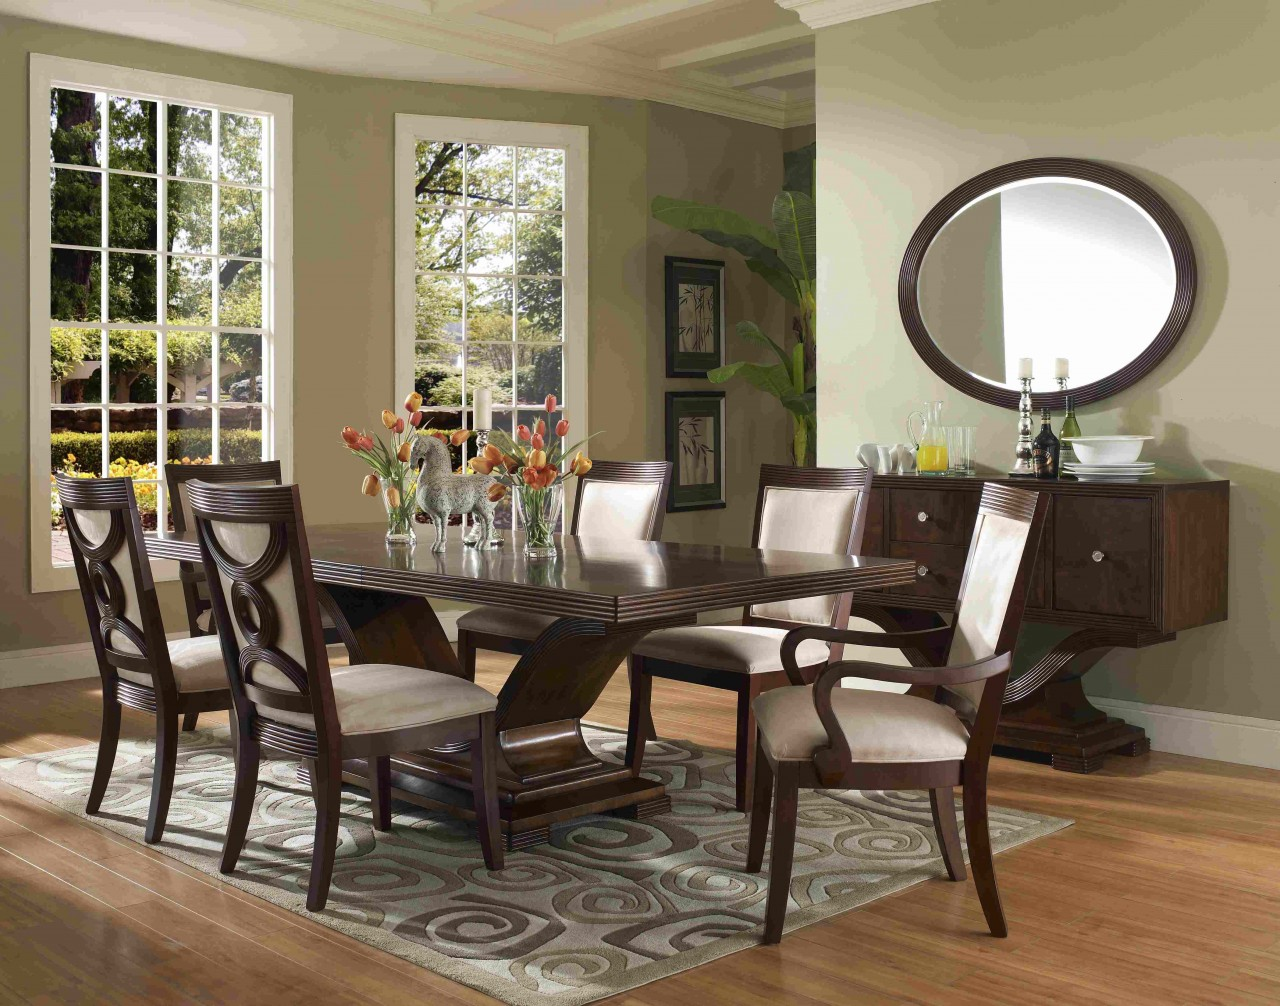 Perfect formal dining room sets for 8 homesfeed for Dinner room ideas